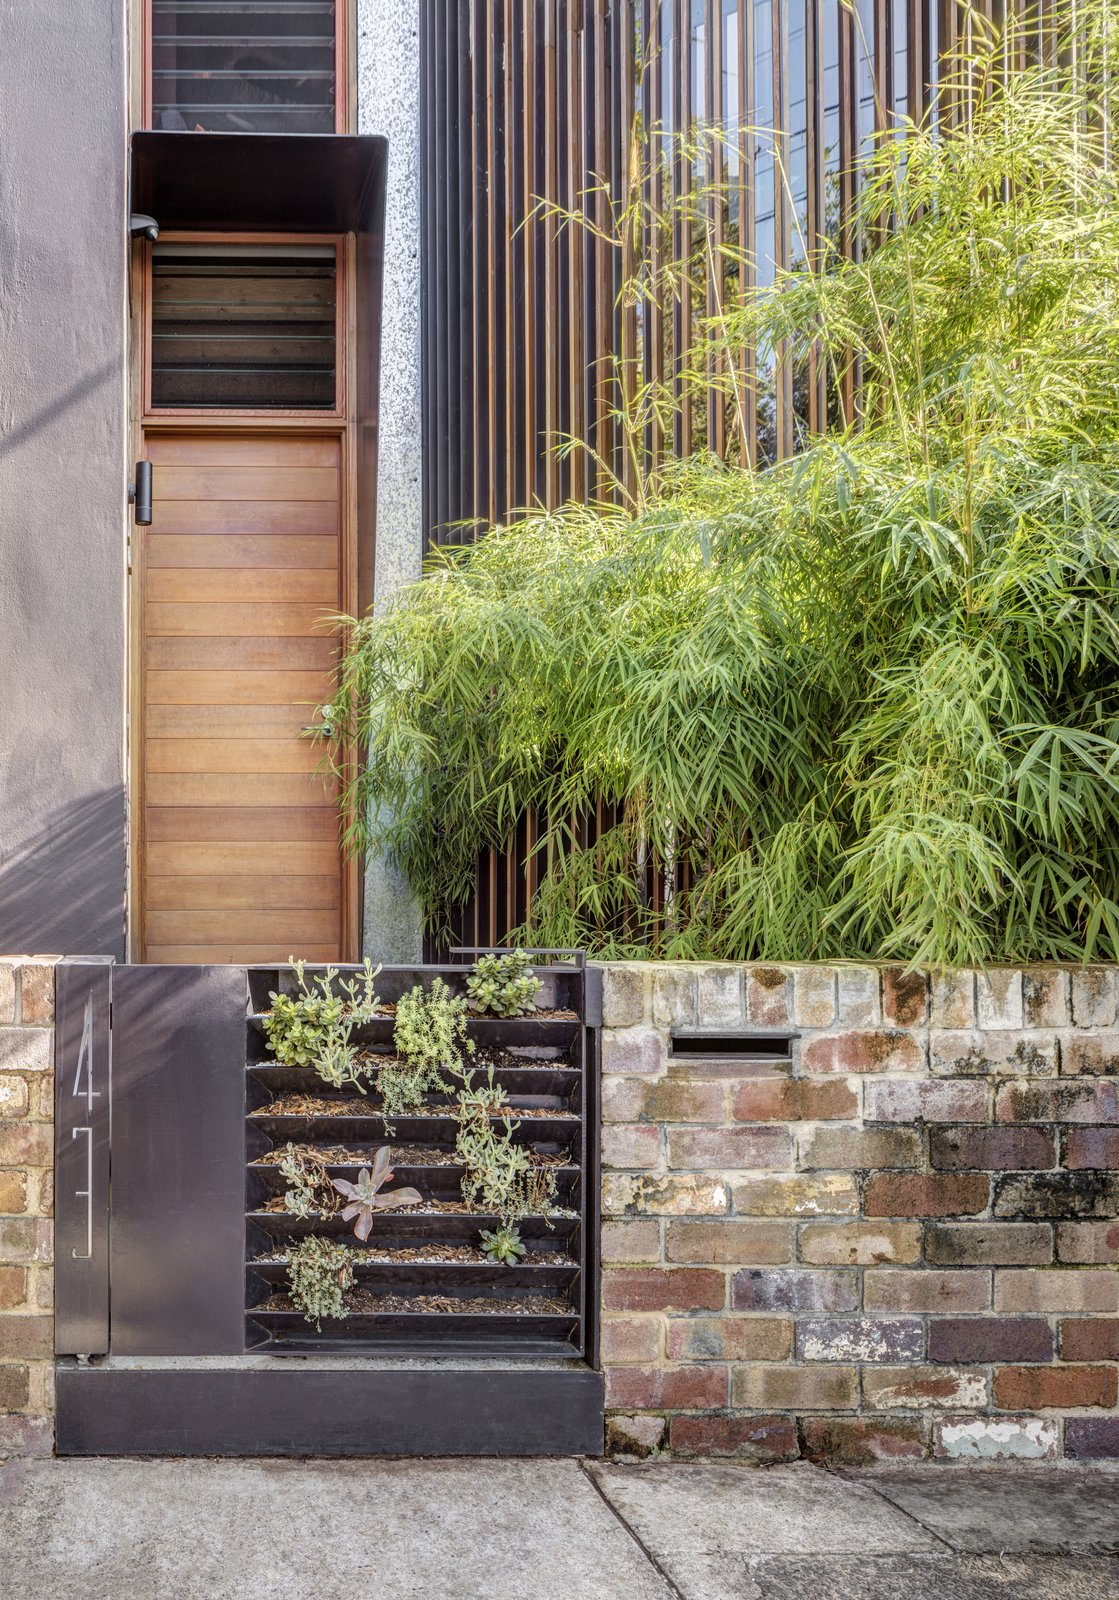 Exterior, Concrete Siding Material, Wood Siding Material, House Building Type, and Stone Siding Material The gate leading to Geoff Carroll and Julie Young's rebuilt terrace house in an inner suburb of Sydney, Australia, holds an array of succulents, signaling what lies within:  a greenery-filled home that includes a central courtyard, vertical gardens, aquaponics and rain filter systems, and even a chicken coop. Architect Clinton Cole of CplusC Architectural Workshop led a team of collaborators in revamping the property.  Aquas Perma Solar Firma from A Sustainable Home Near Sydney Boasts Chicken Coops, Vertical Gardens, and More